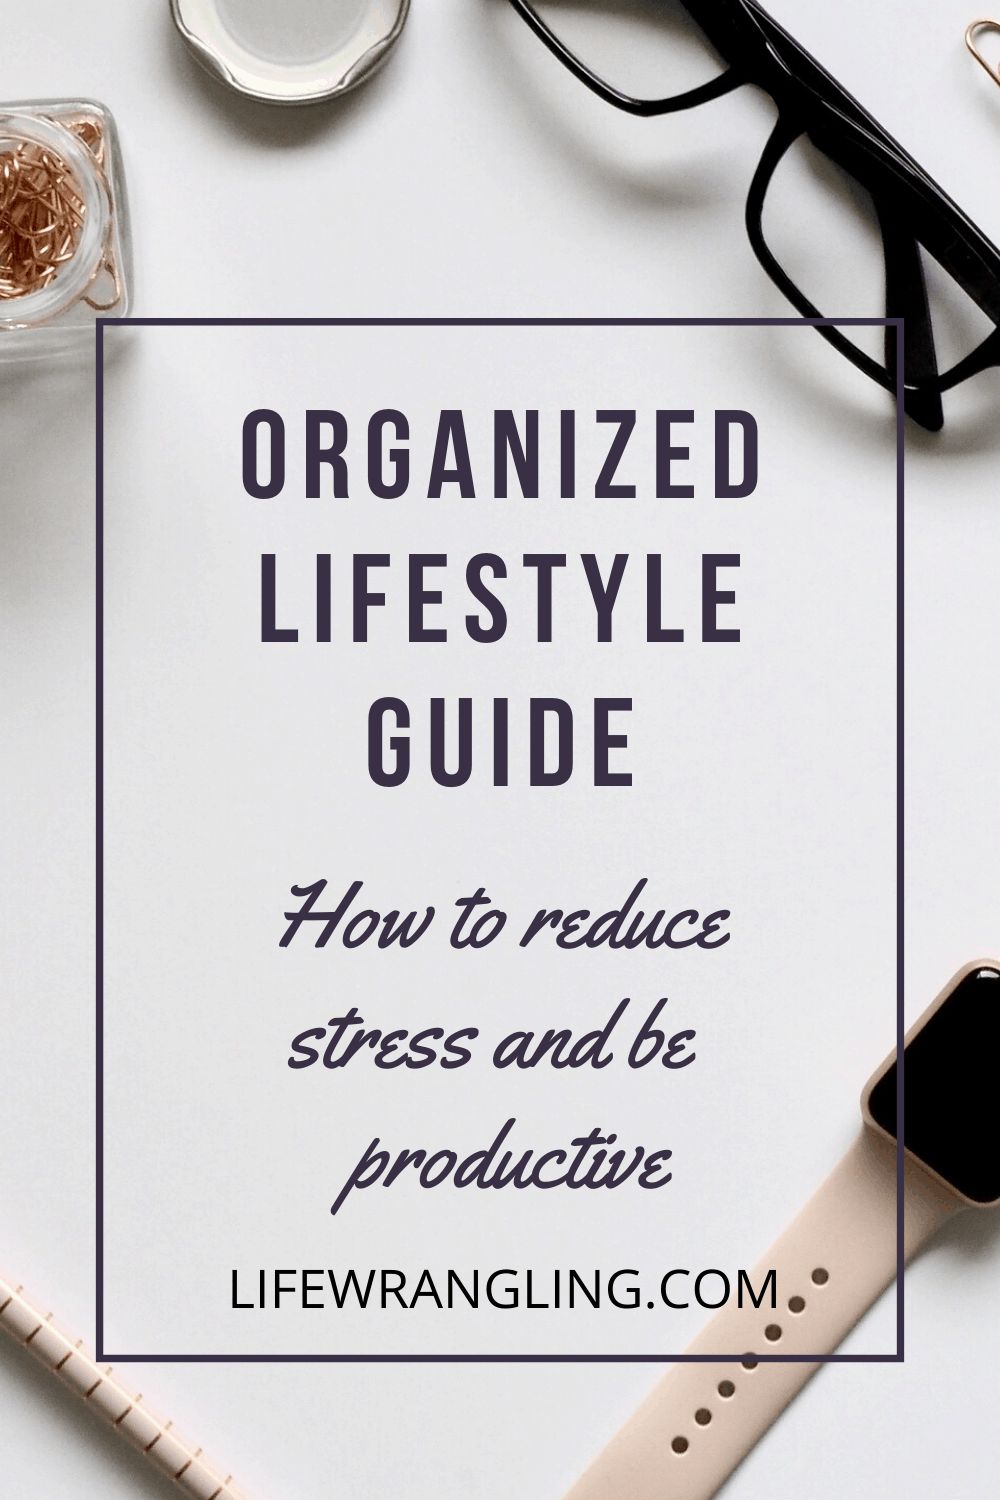 Organized lifestyle guide: How to reduce stress and be productive